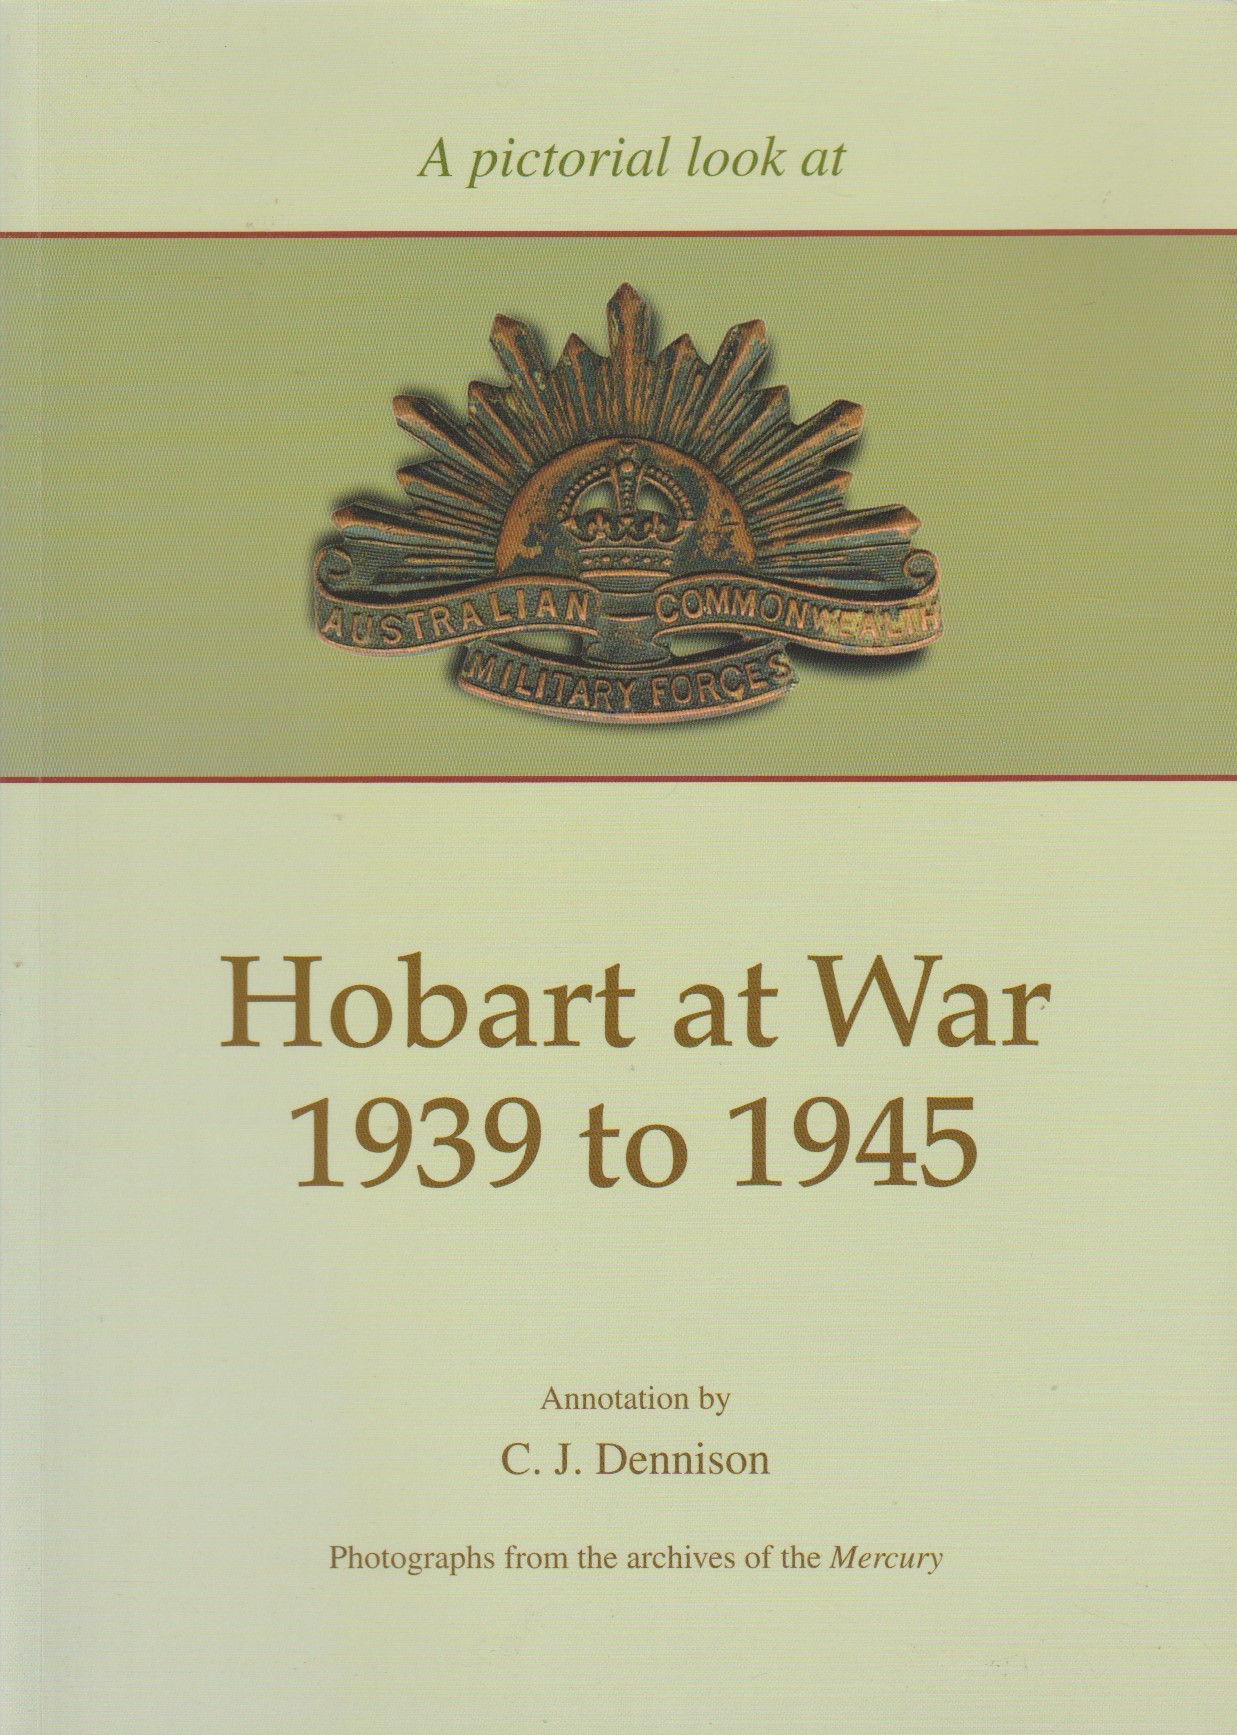 A Pictorial Look at Hobart at War 1939 to 1945